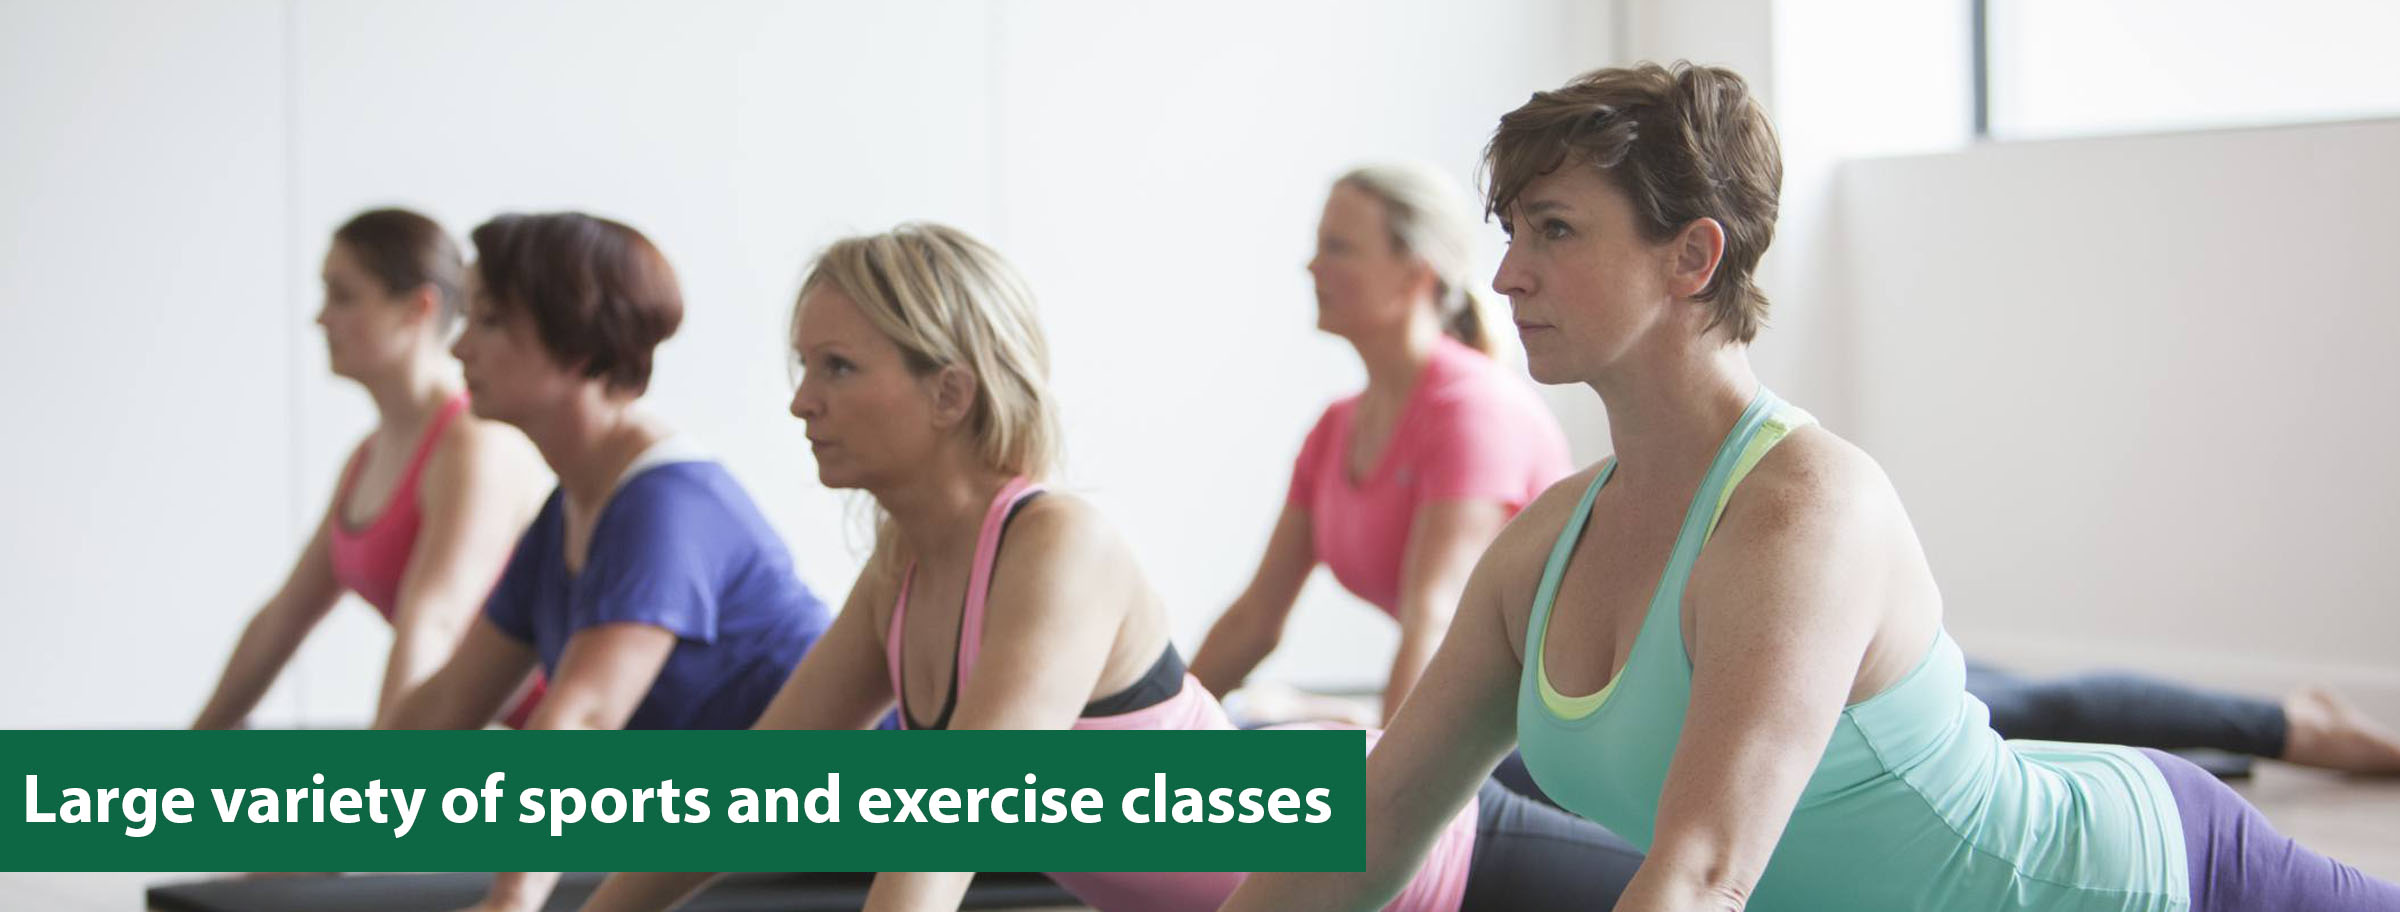 Exercise Classes Banner - HP